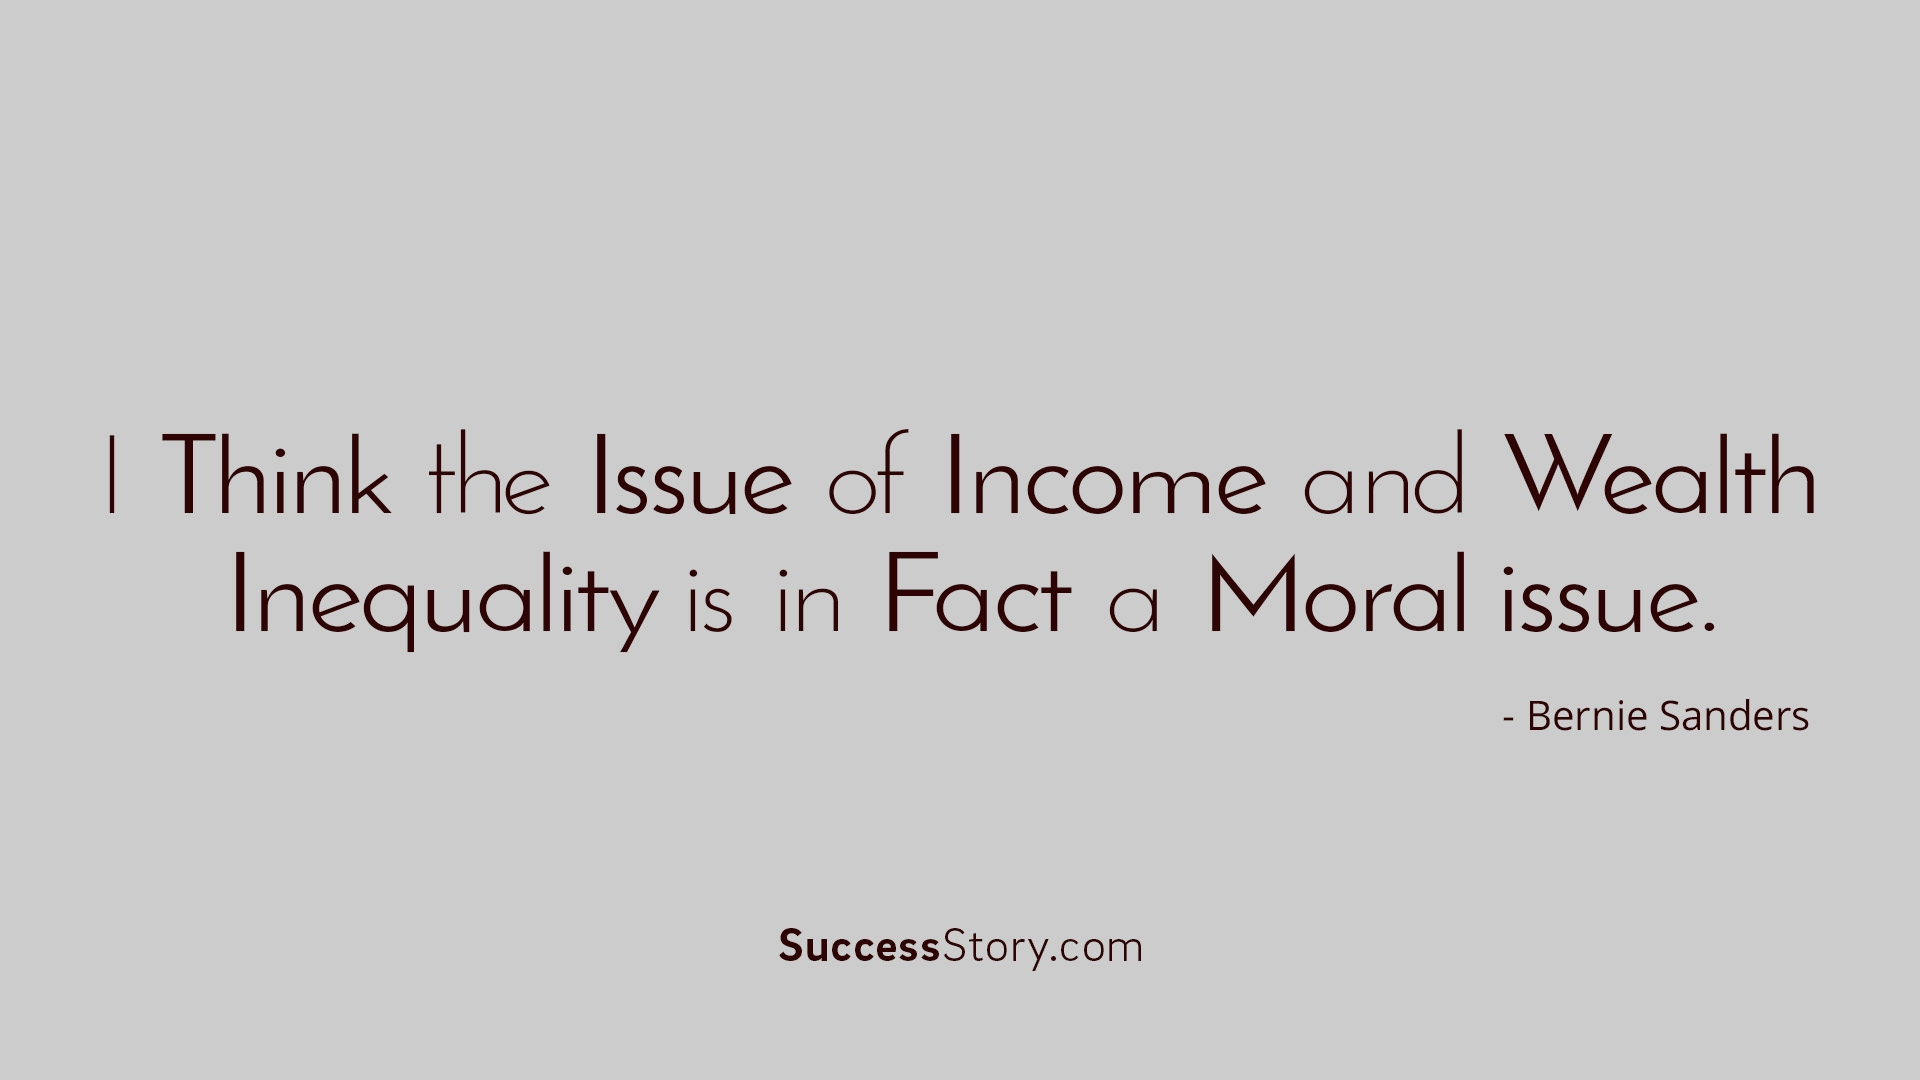 I think the issue of income and wealth inequality is in fact a moral issue